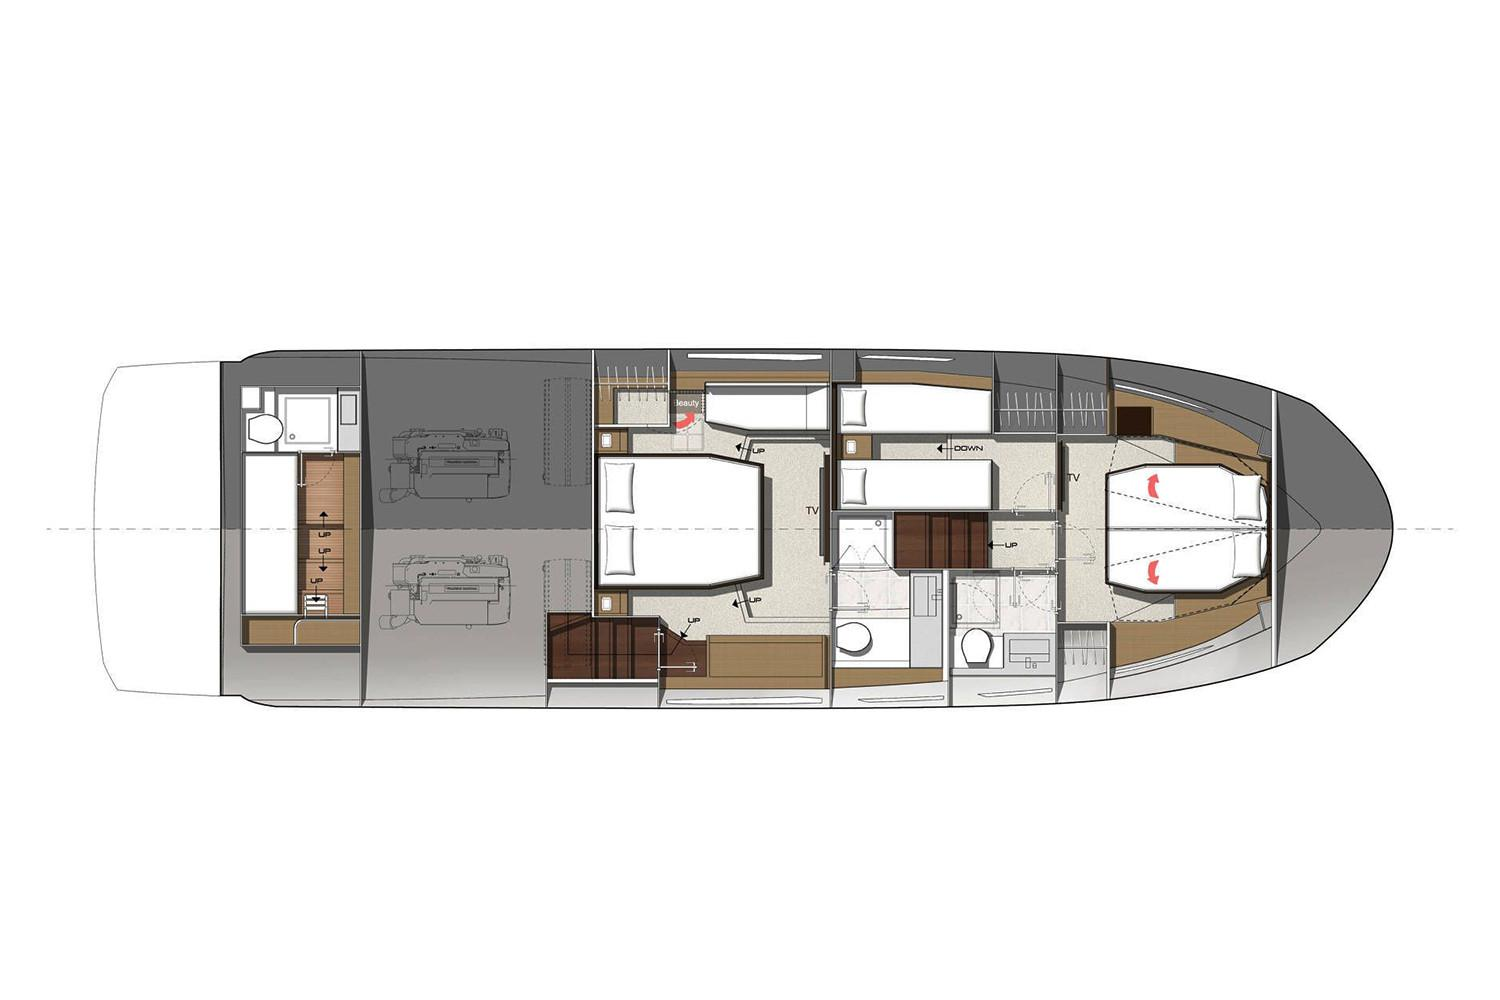 2022 Prestige 520 #76240 inventory image at Sun Country Coastal in Newport Beach